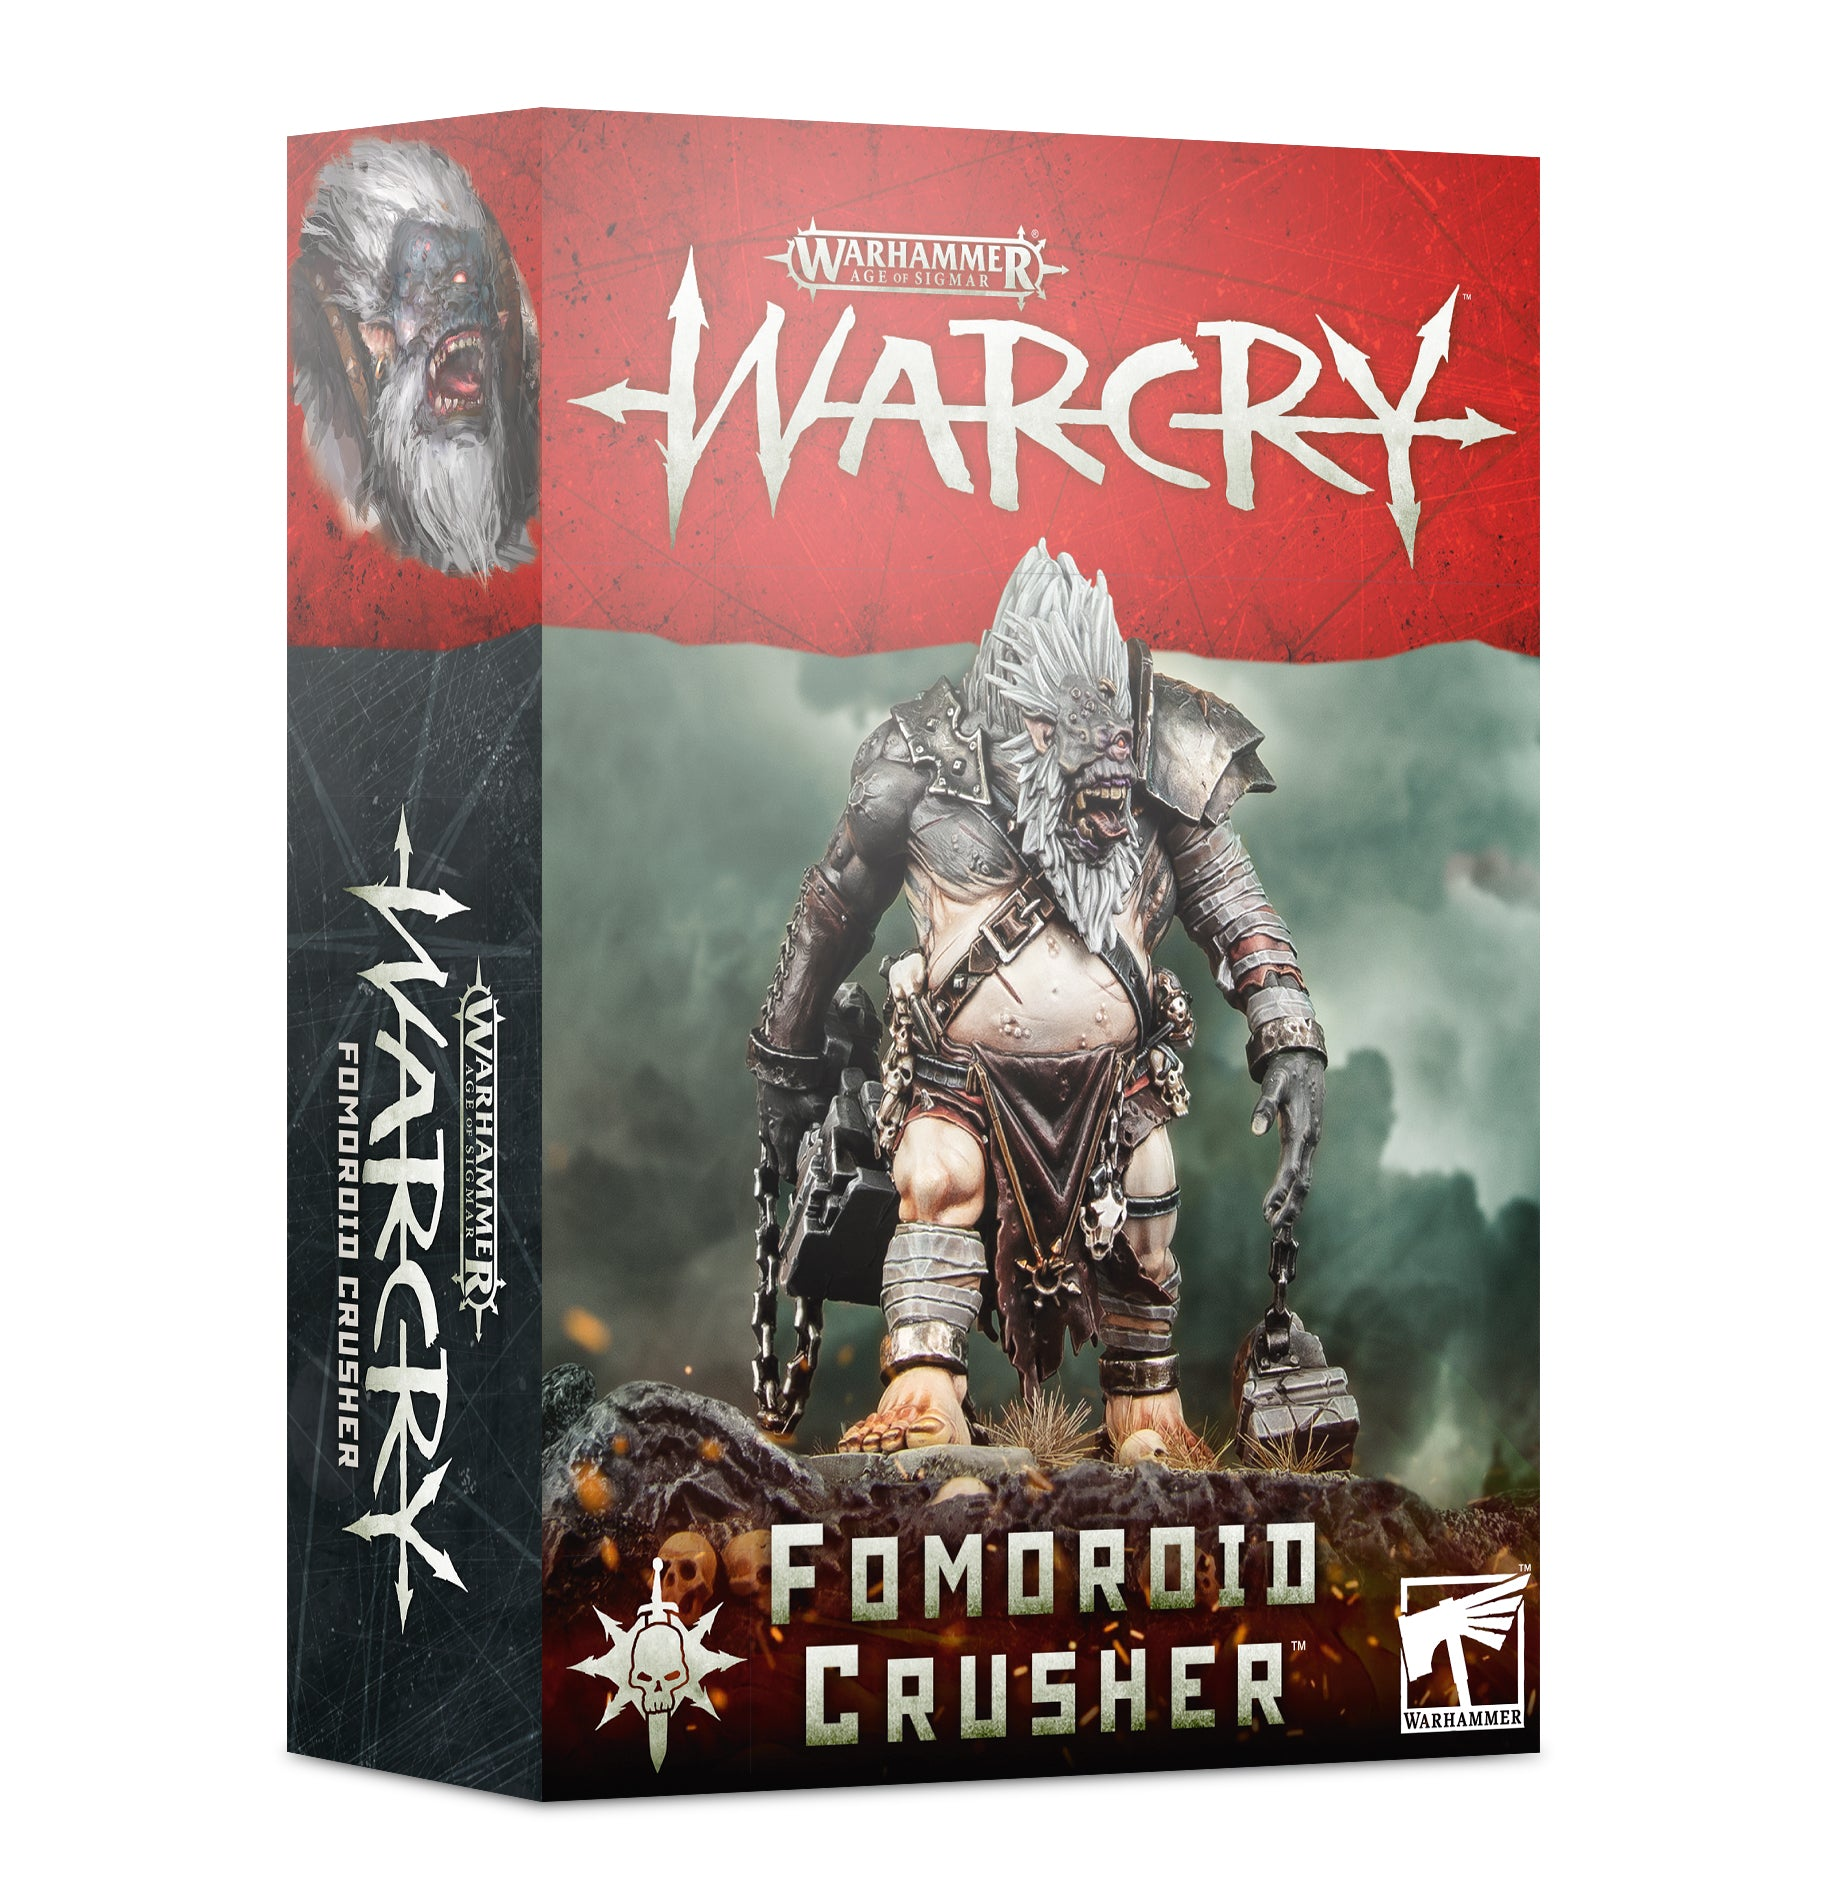 Fomoroid Crusher (Warcry)